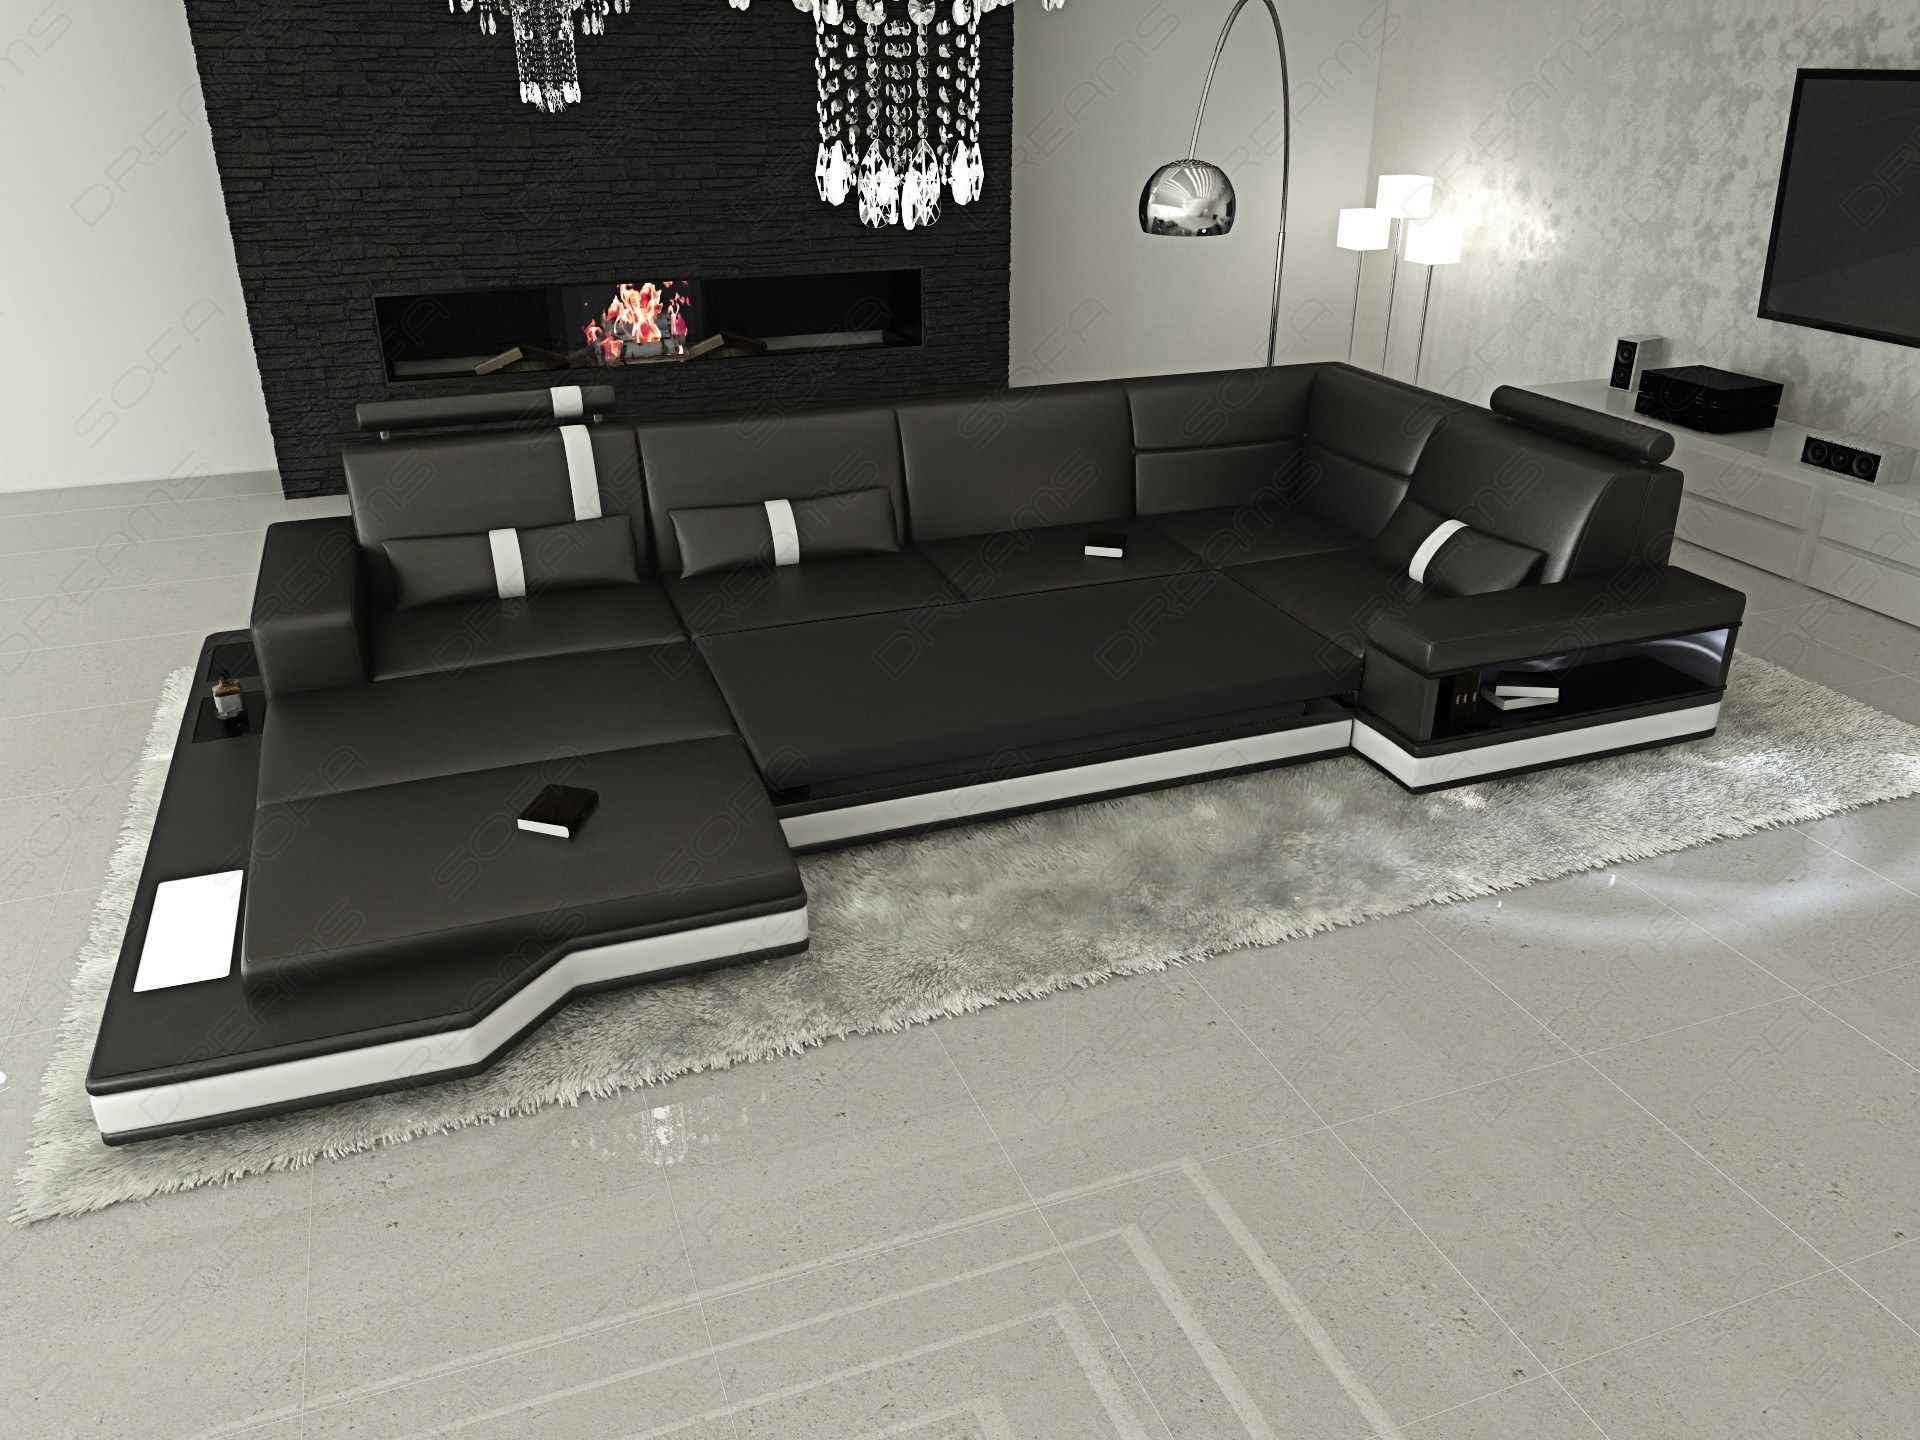 sofas ledersofa stoff wohnlandschaft materialmix messana u form sofas g nstig online kaufen. Black Bedroom Furniture Sets. Home Design Ideas